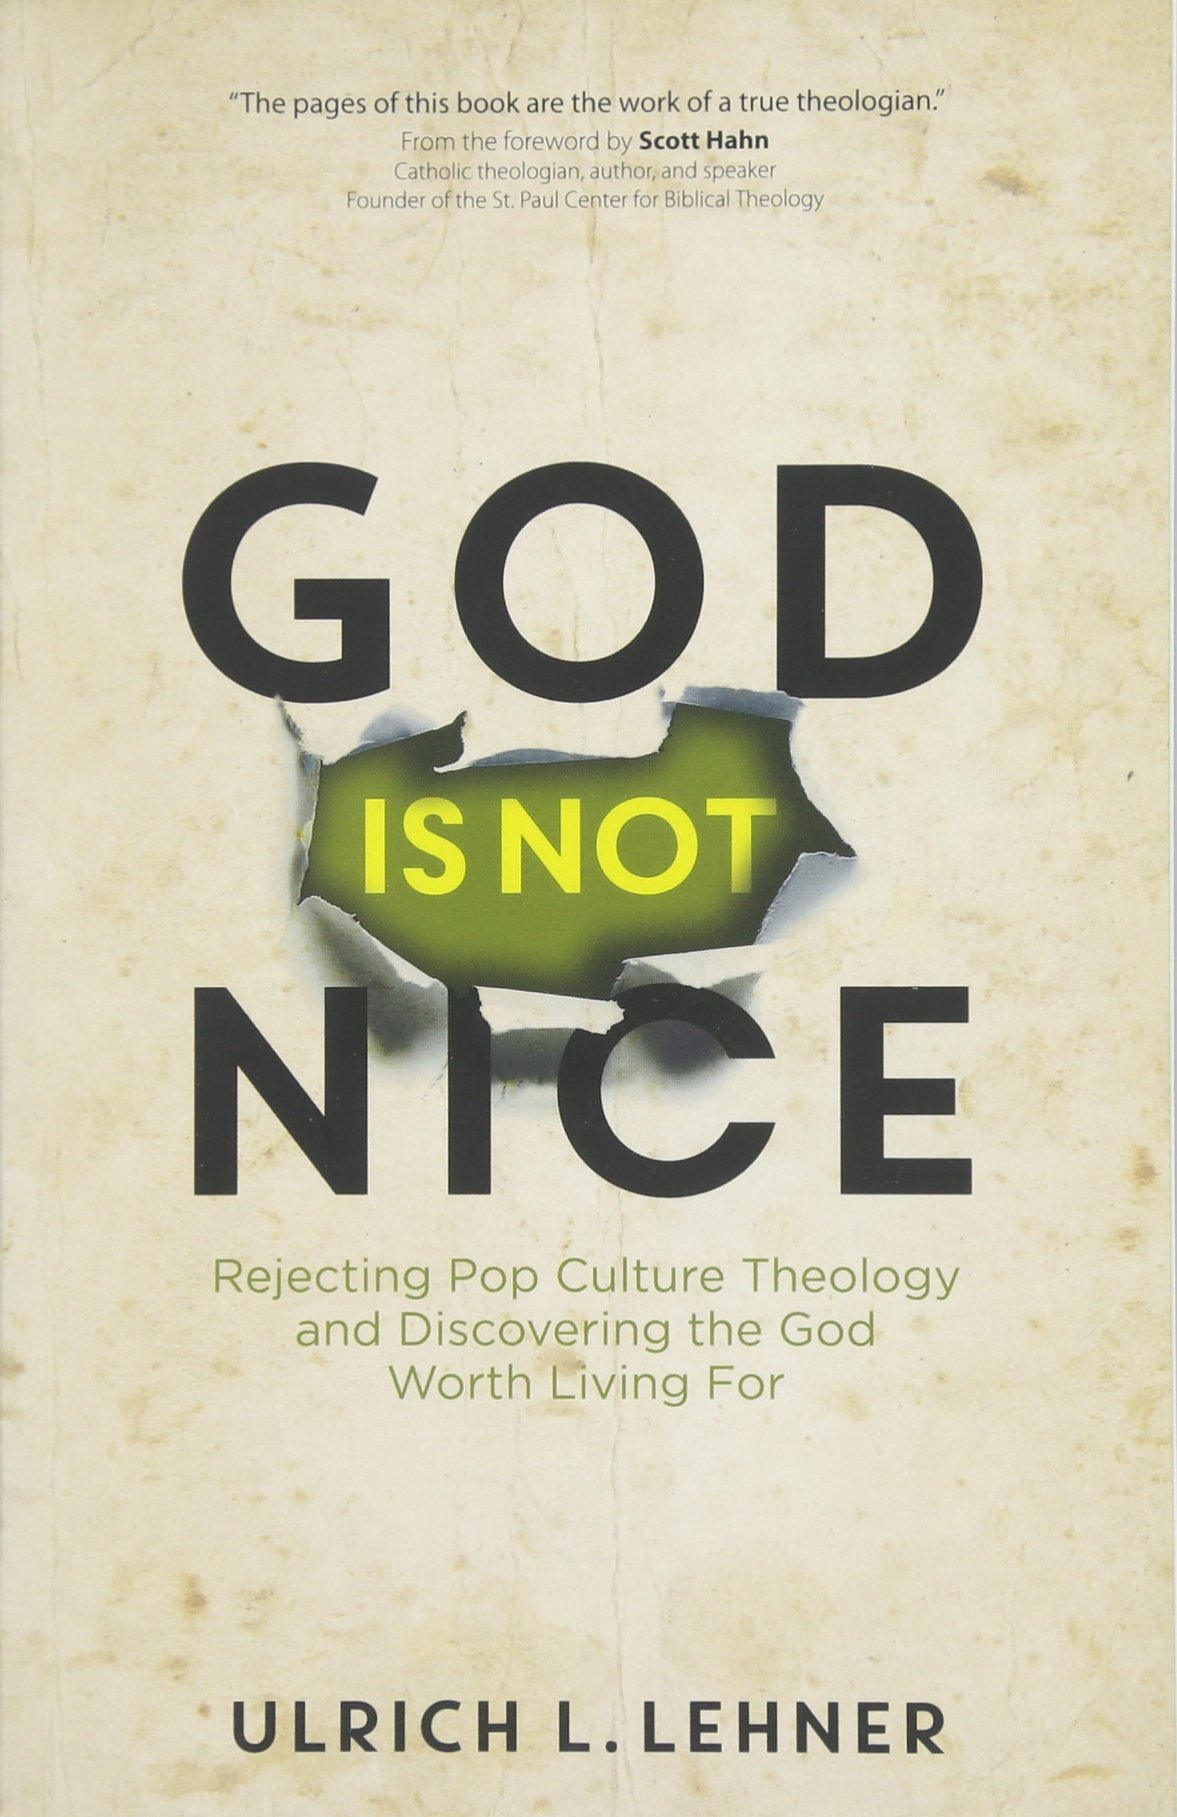 God Is Not Nice: Rejecting Pop Culture Theology and Discovering the God Worth Living For pdf